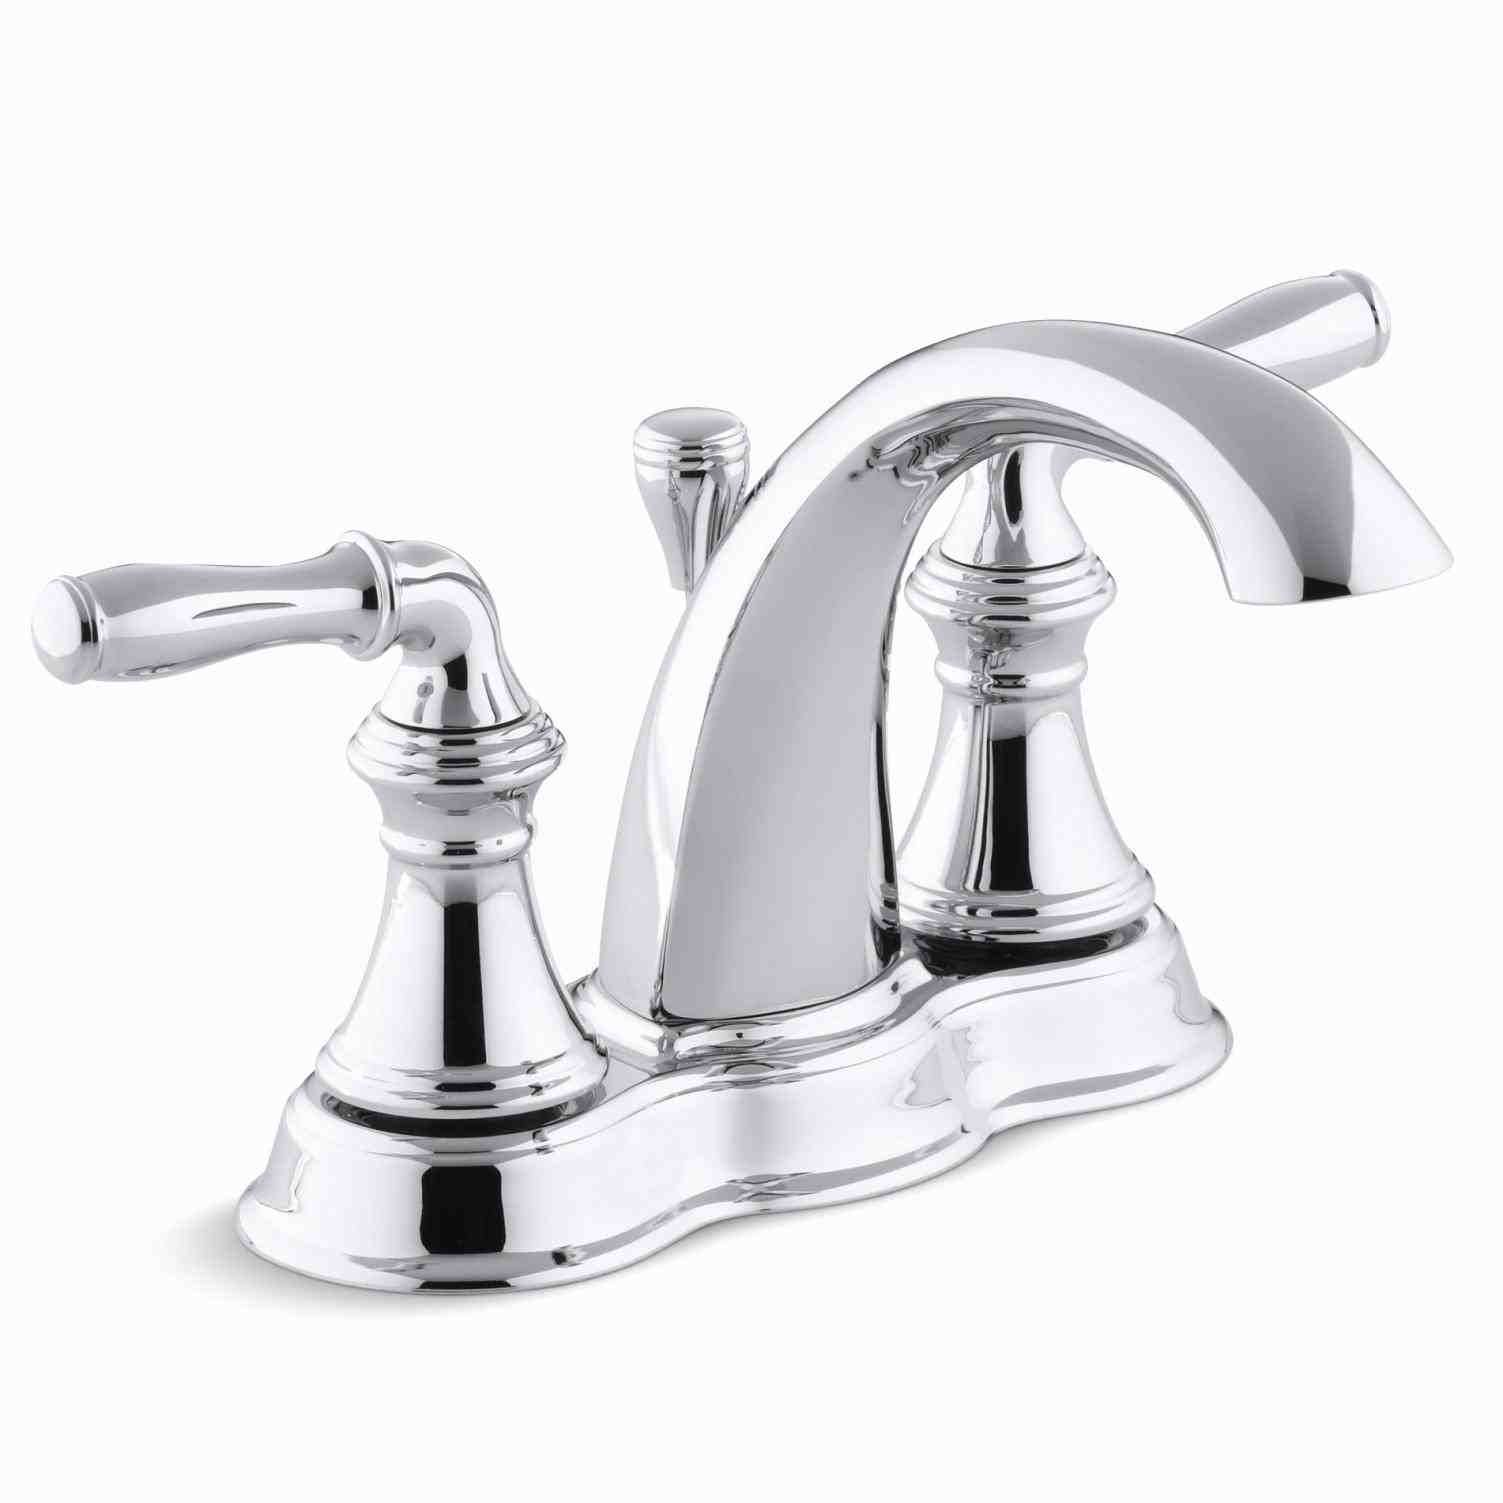 New Post delta faucet replacement visit bathroomremodelideass.club ...